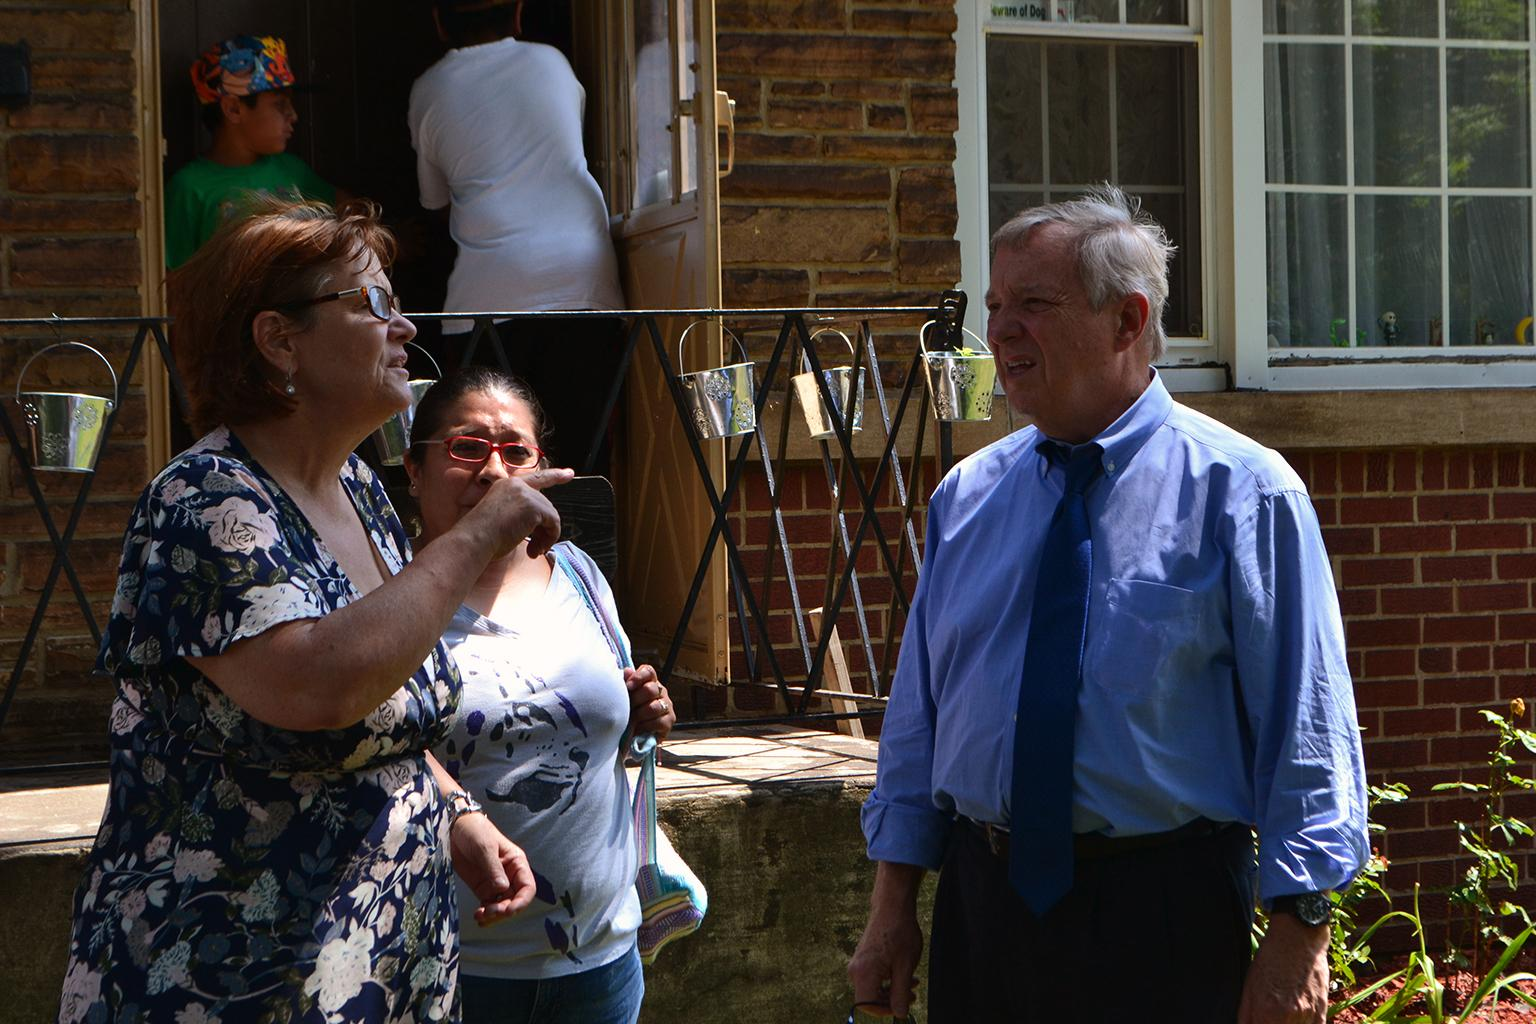 U.S. Sen. Dick Durbin talks with a Southeast Side resident outside of her home Thursday. (Alex Ruppenthal / Chicago Tonight)